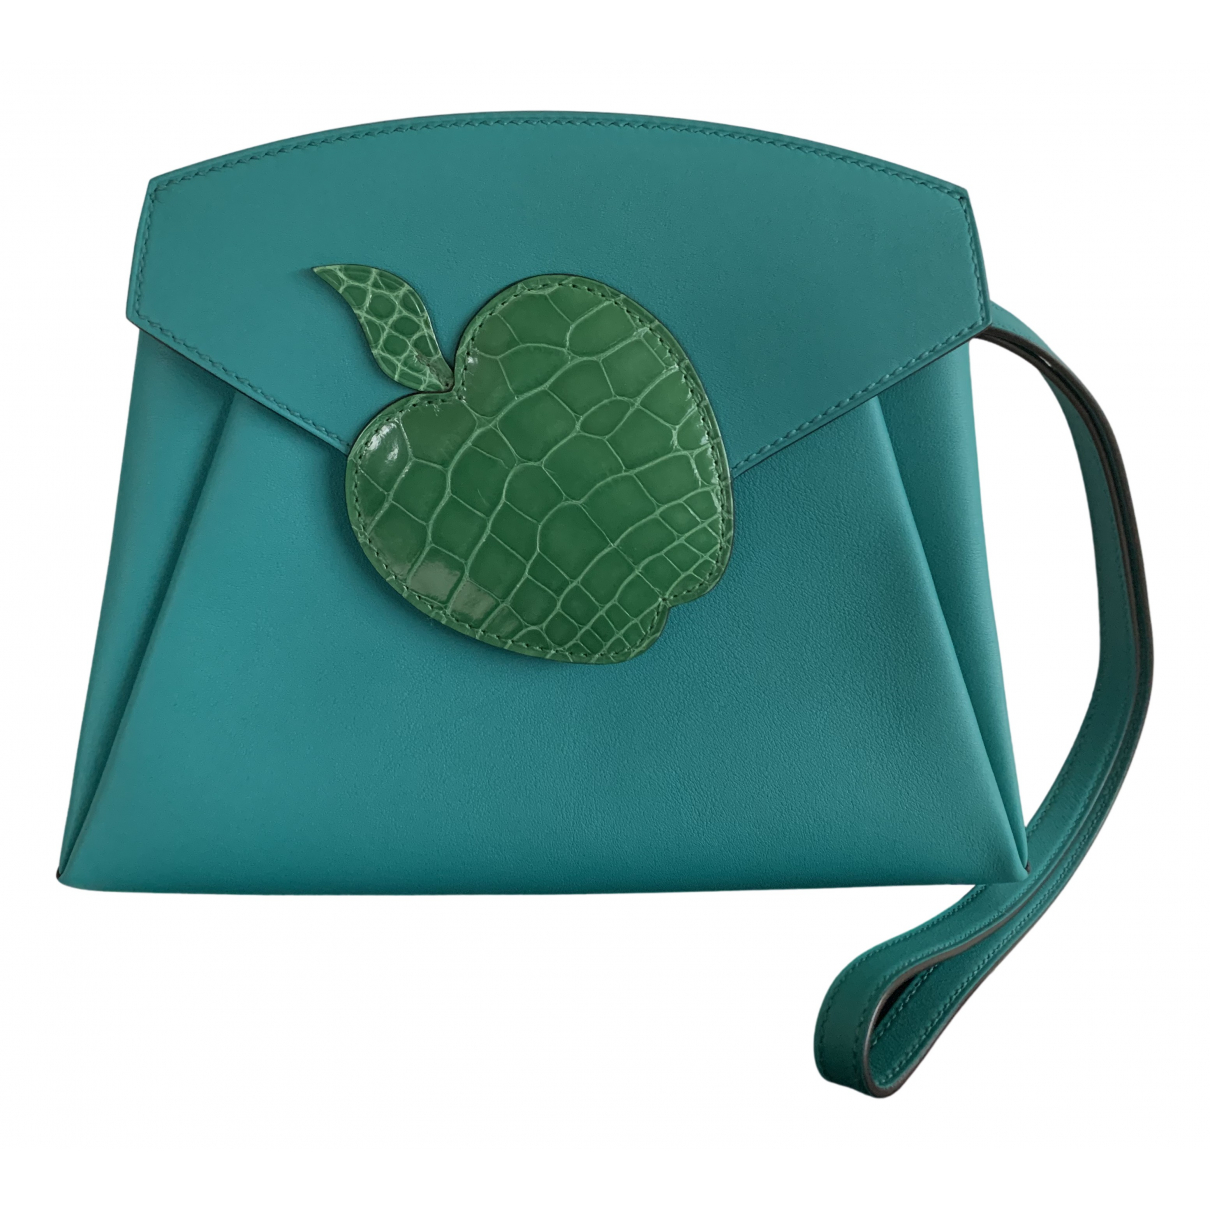 Hermès N Blue Leather Clutch bag for Women N